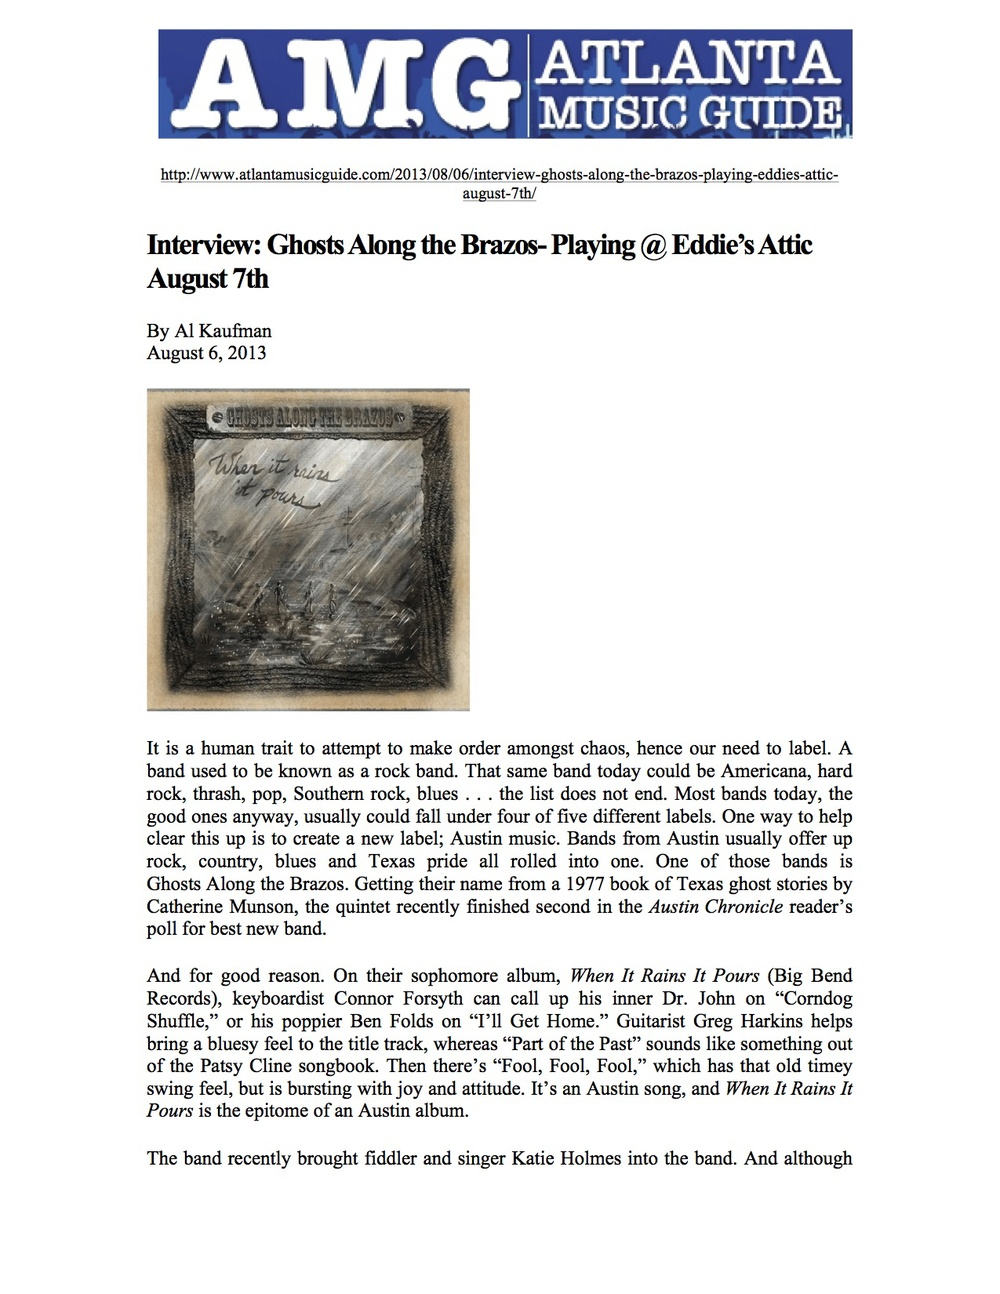 Big Bend Records_Ghosts Along the Brazos_Atlanta Music Guide_August 6, 2013 jpeg.jpg